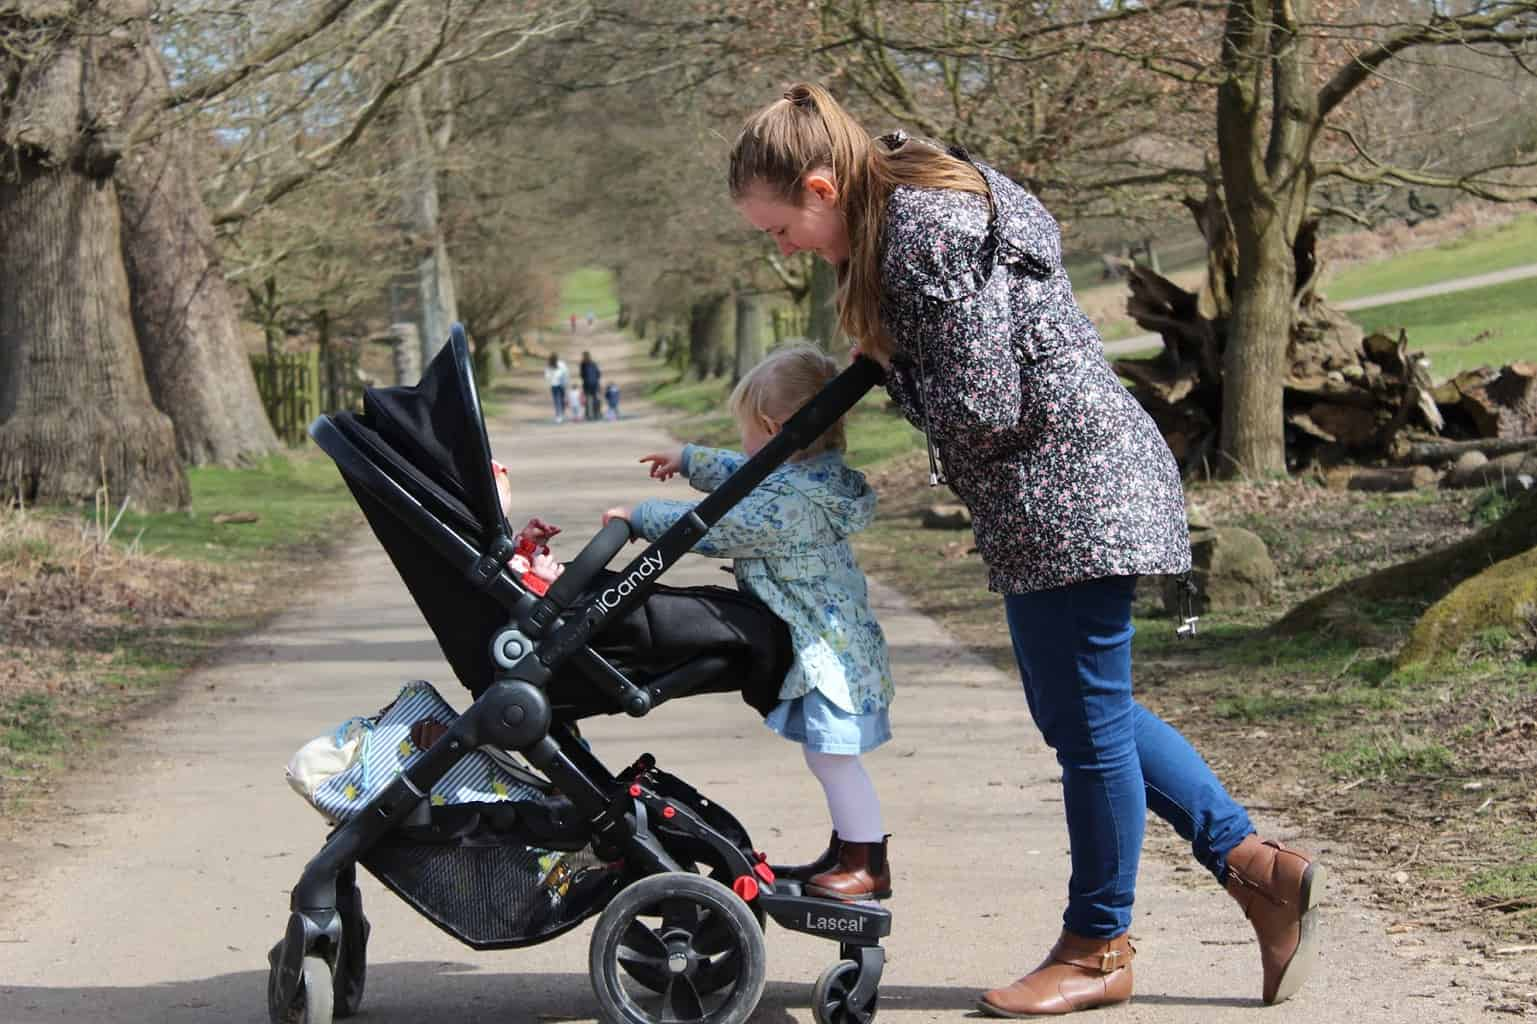 A buggy board is great for a walk in the city center as you can safely transport both children across the street. - Top 13 Parent-approved Best Stroller Accessories Ideas | Baby Journey